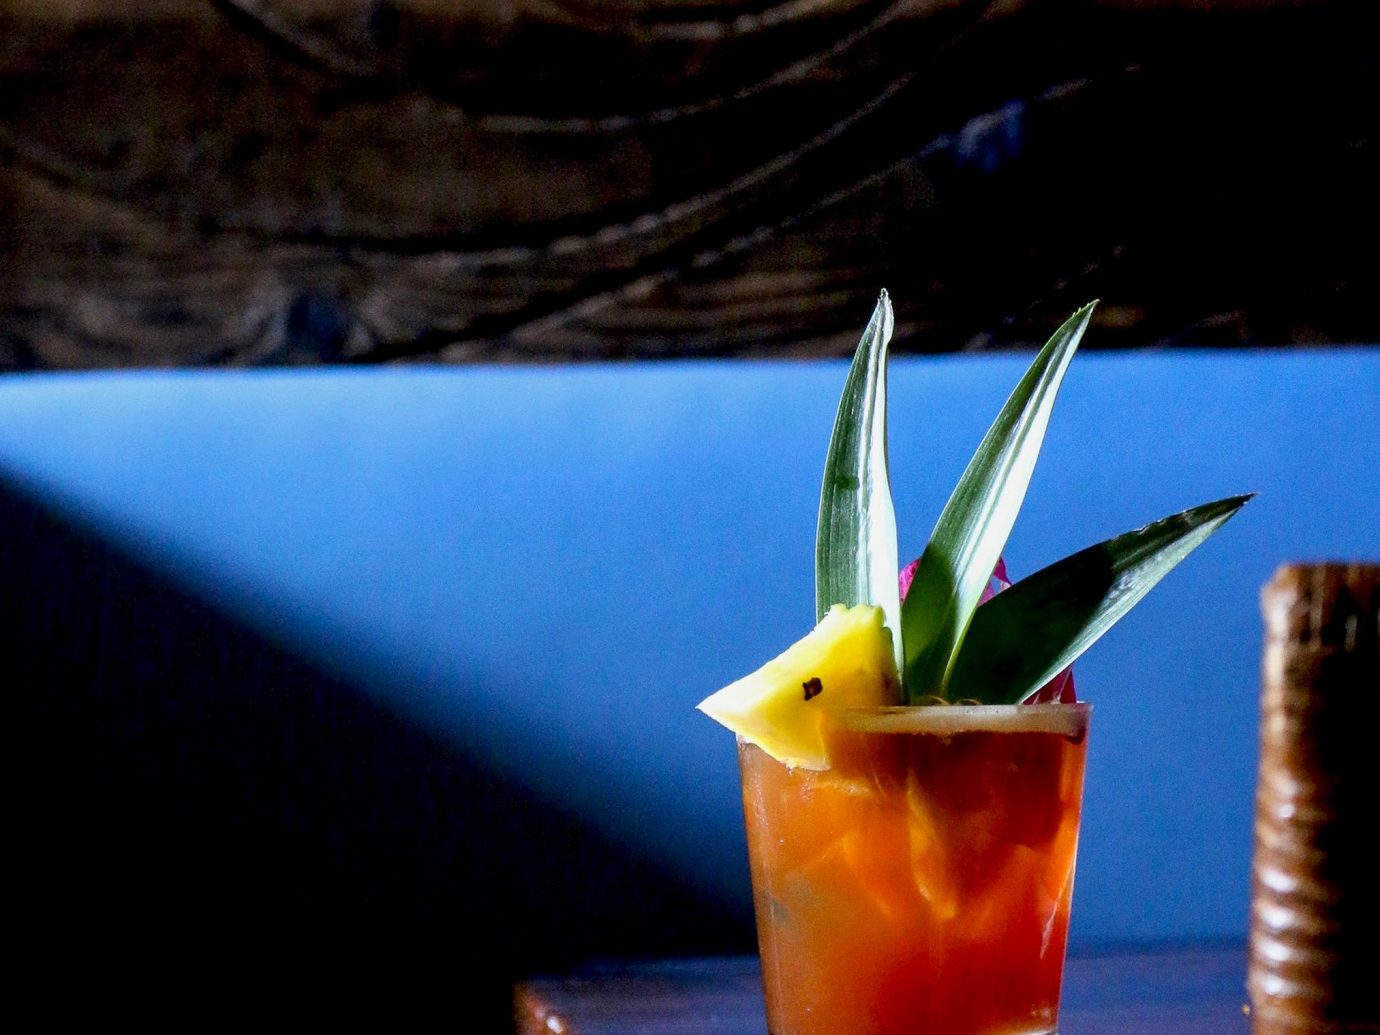 Boutique Hotels Hotels Trip Ideas table cup Drink indoor mai tai cocktail garnish glass cocktail caipirinha non alcoholic beverage still life photography orange